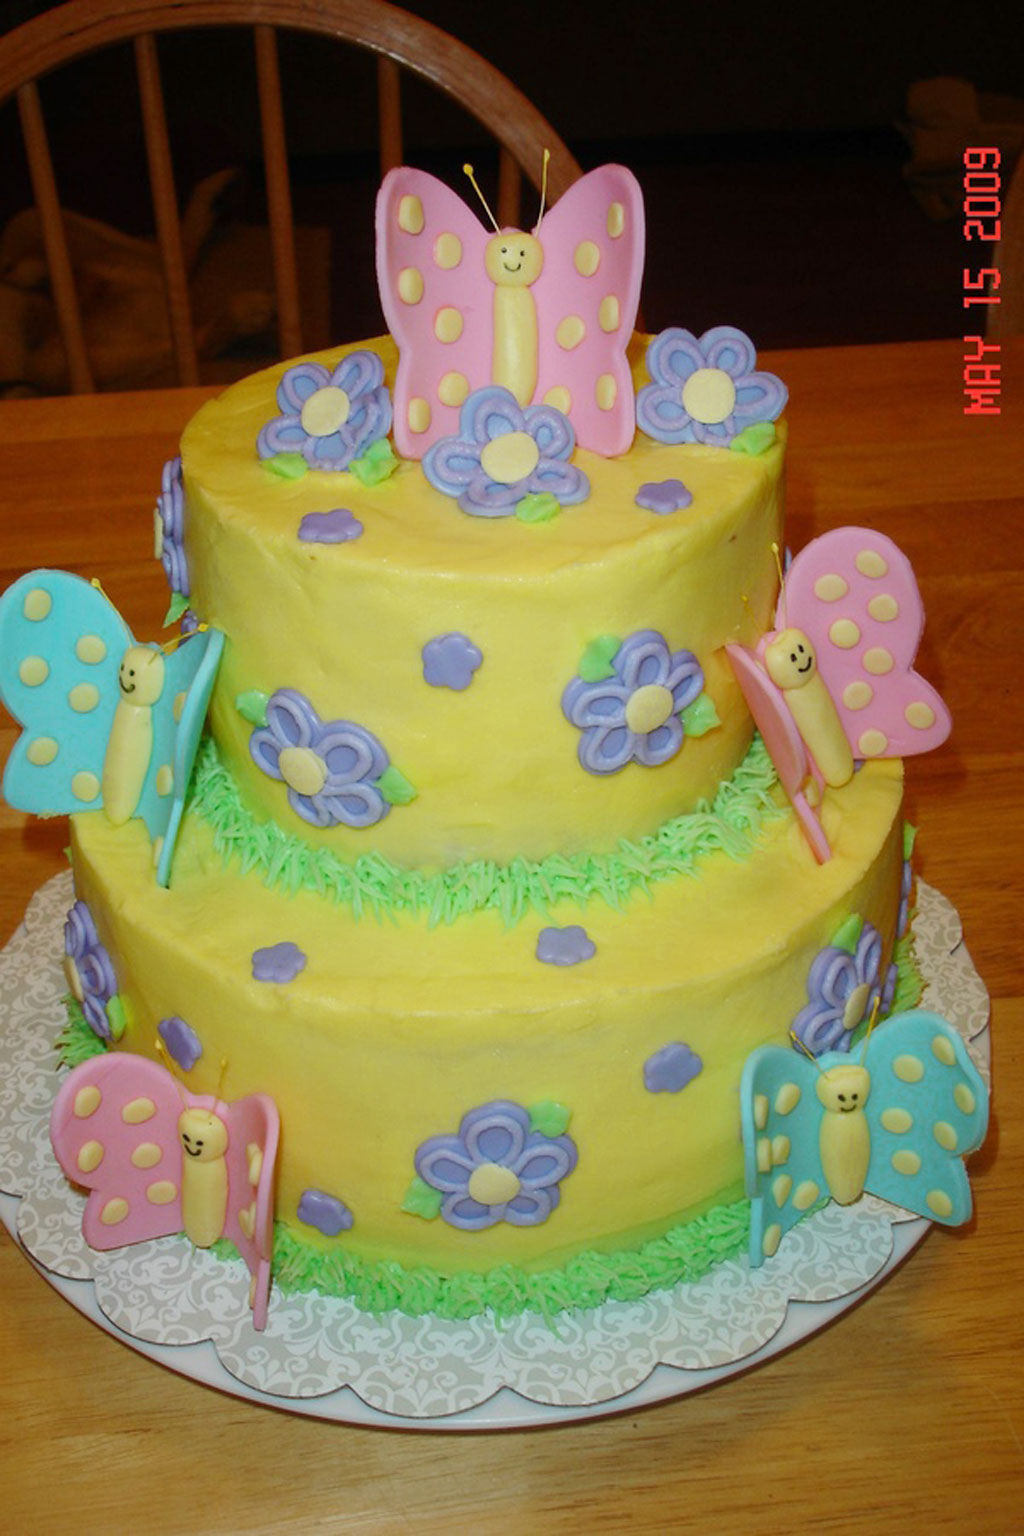 Birthday Cake Pics For Little Girl : Butterfly Birthday Cake For A Little Girl Birthday Cake ...